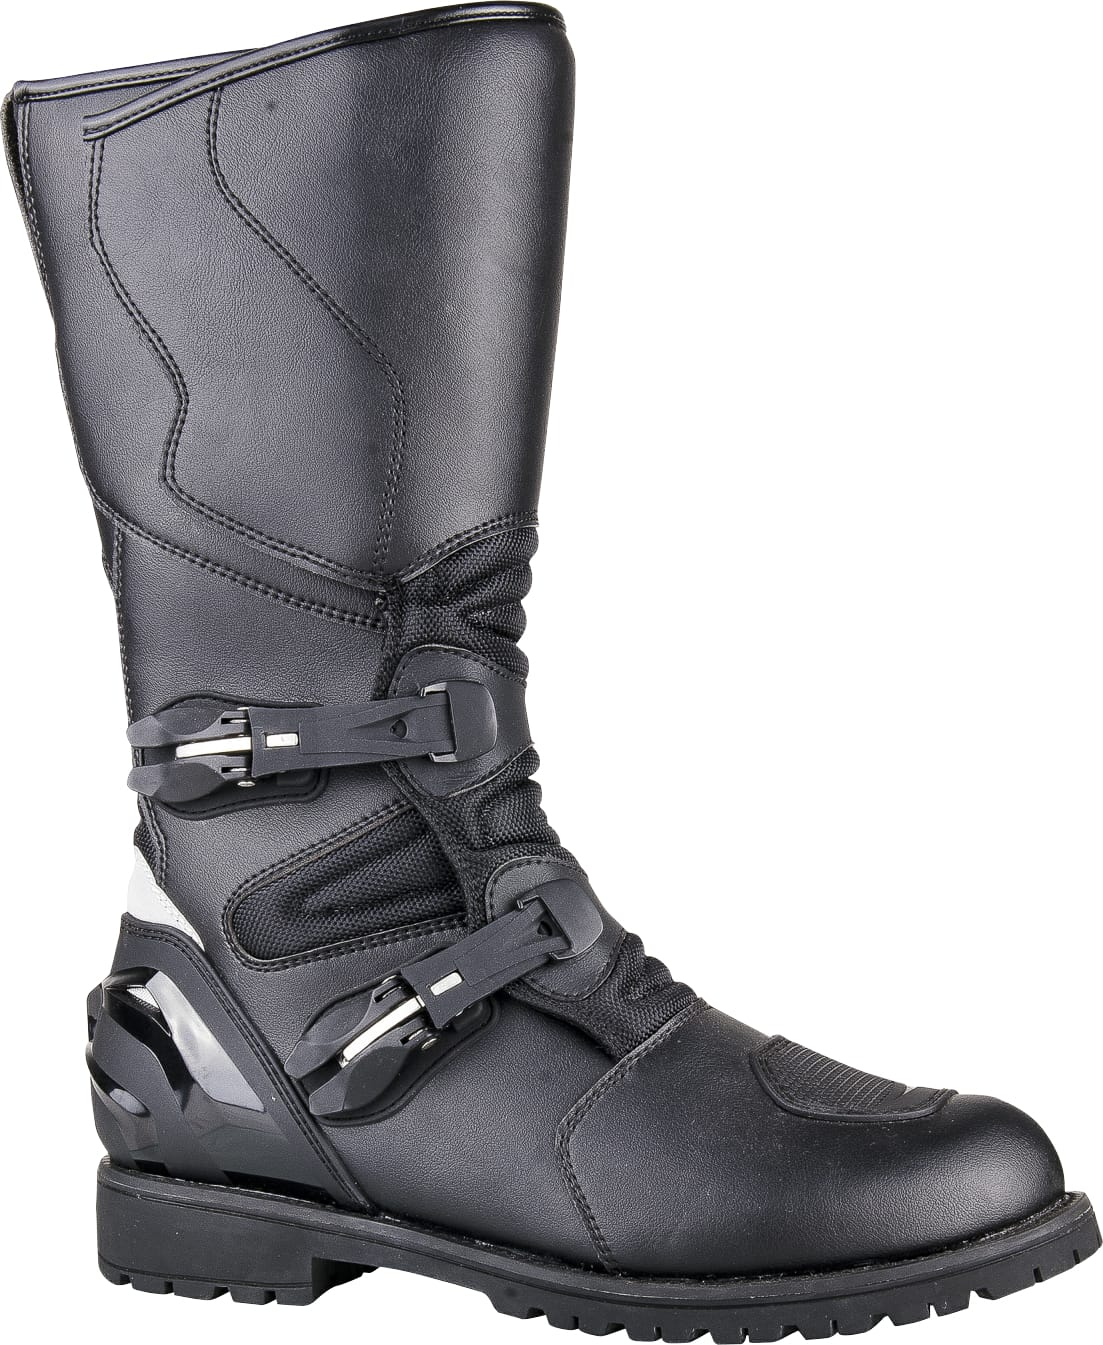 AUGI AT1 Touring Boots Adventure